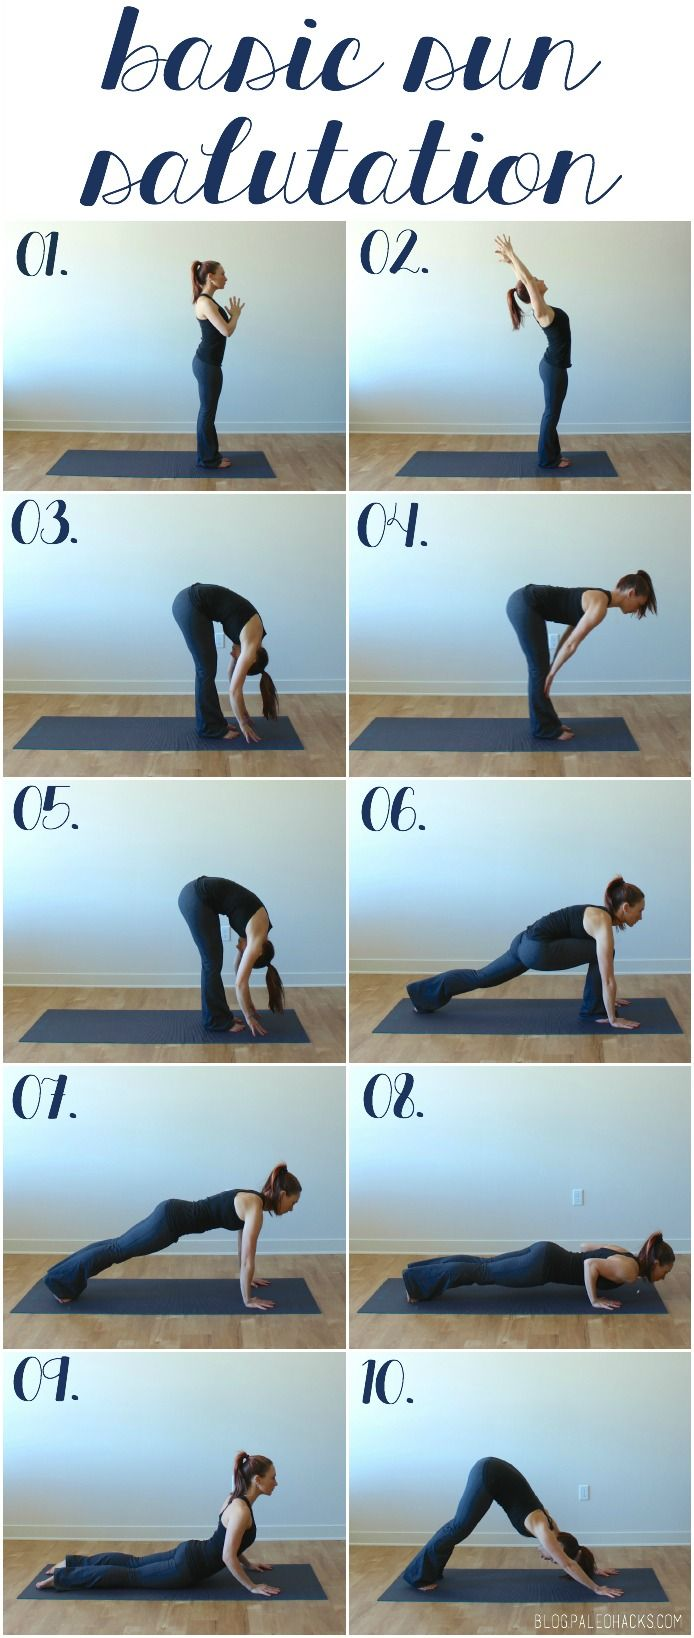 10 easy and gentle yoga modifications anyone can do yoga workout 10 easy and gentle yoga modifications anyone can do solutioingenieria